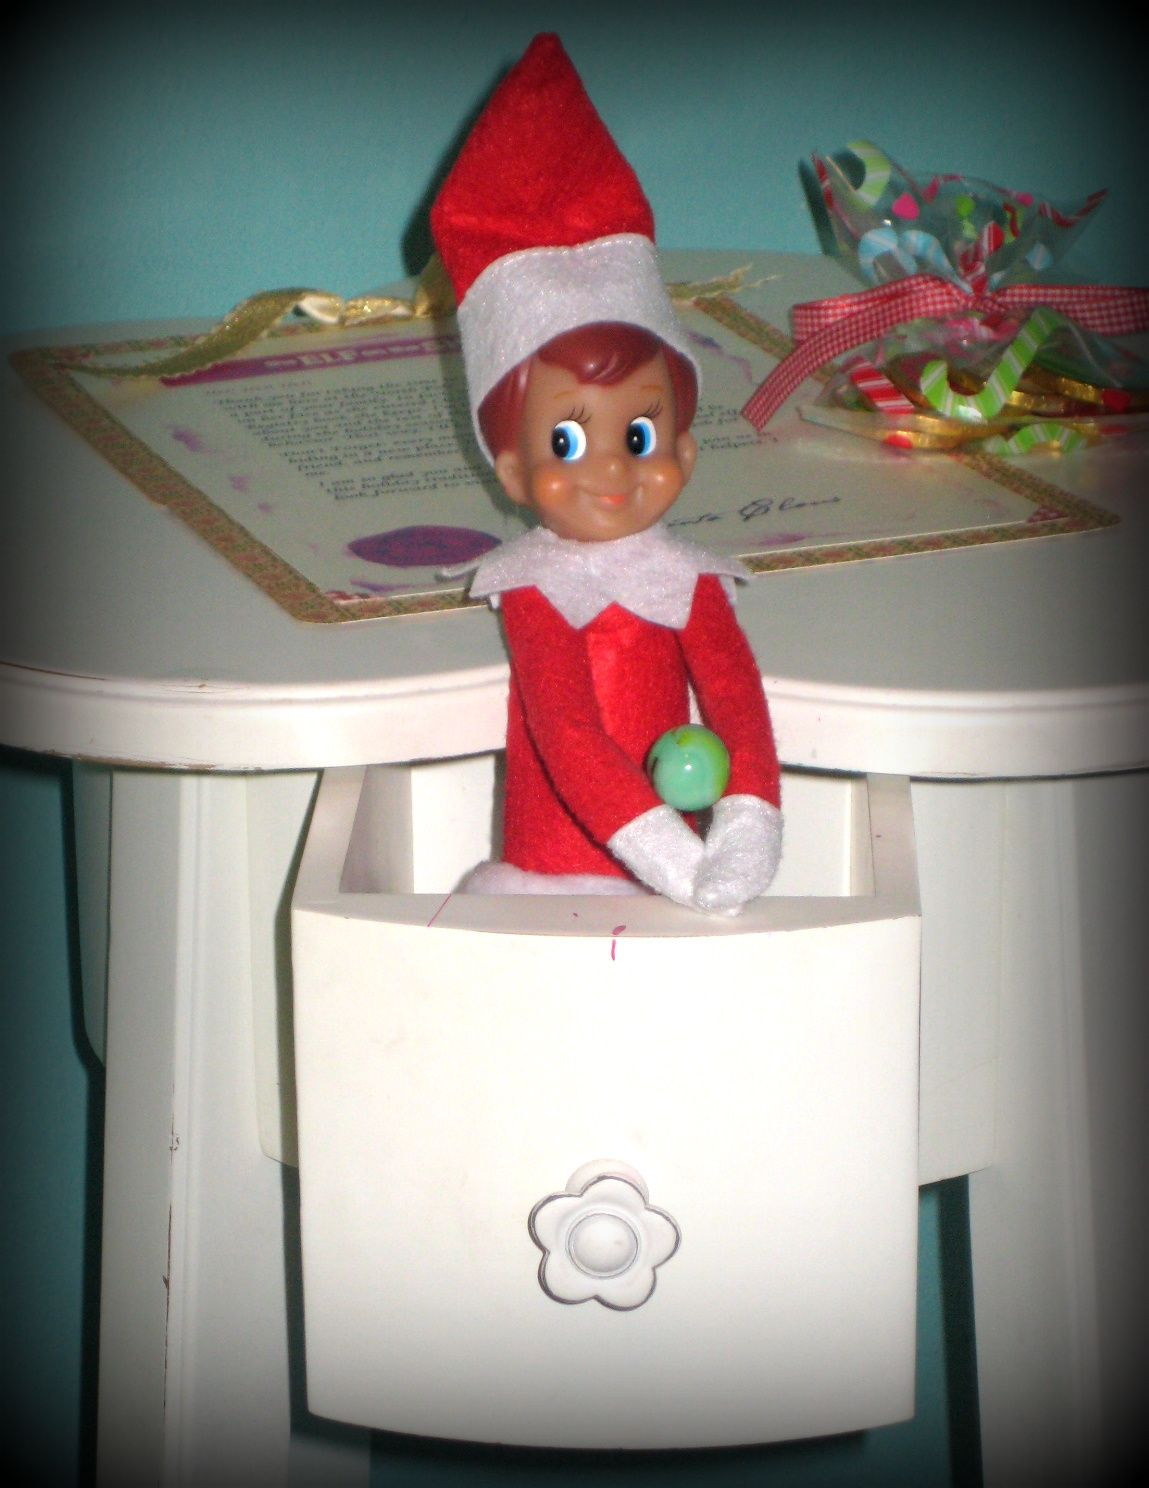 Elf On The Shelf Clarice Got Into The Marbles And Scattered Them Everywhere Elf On The Shelf Holiday Decor Shelves